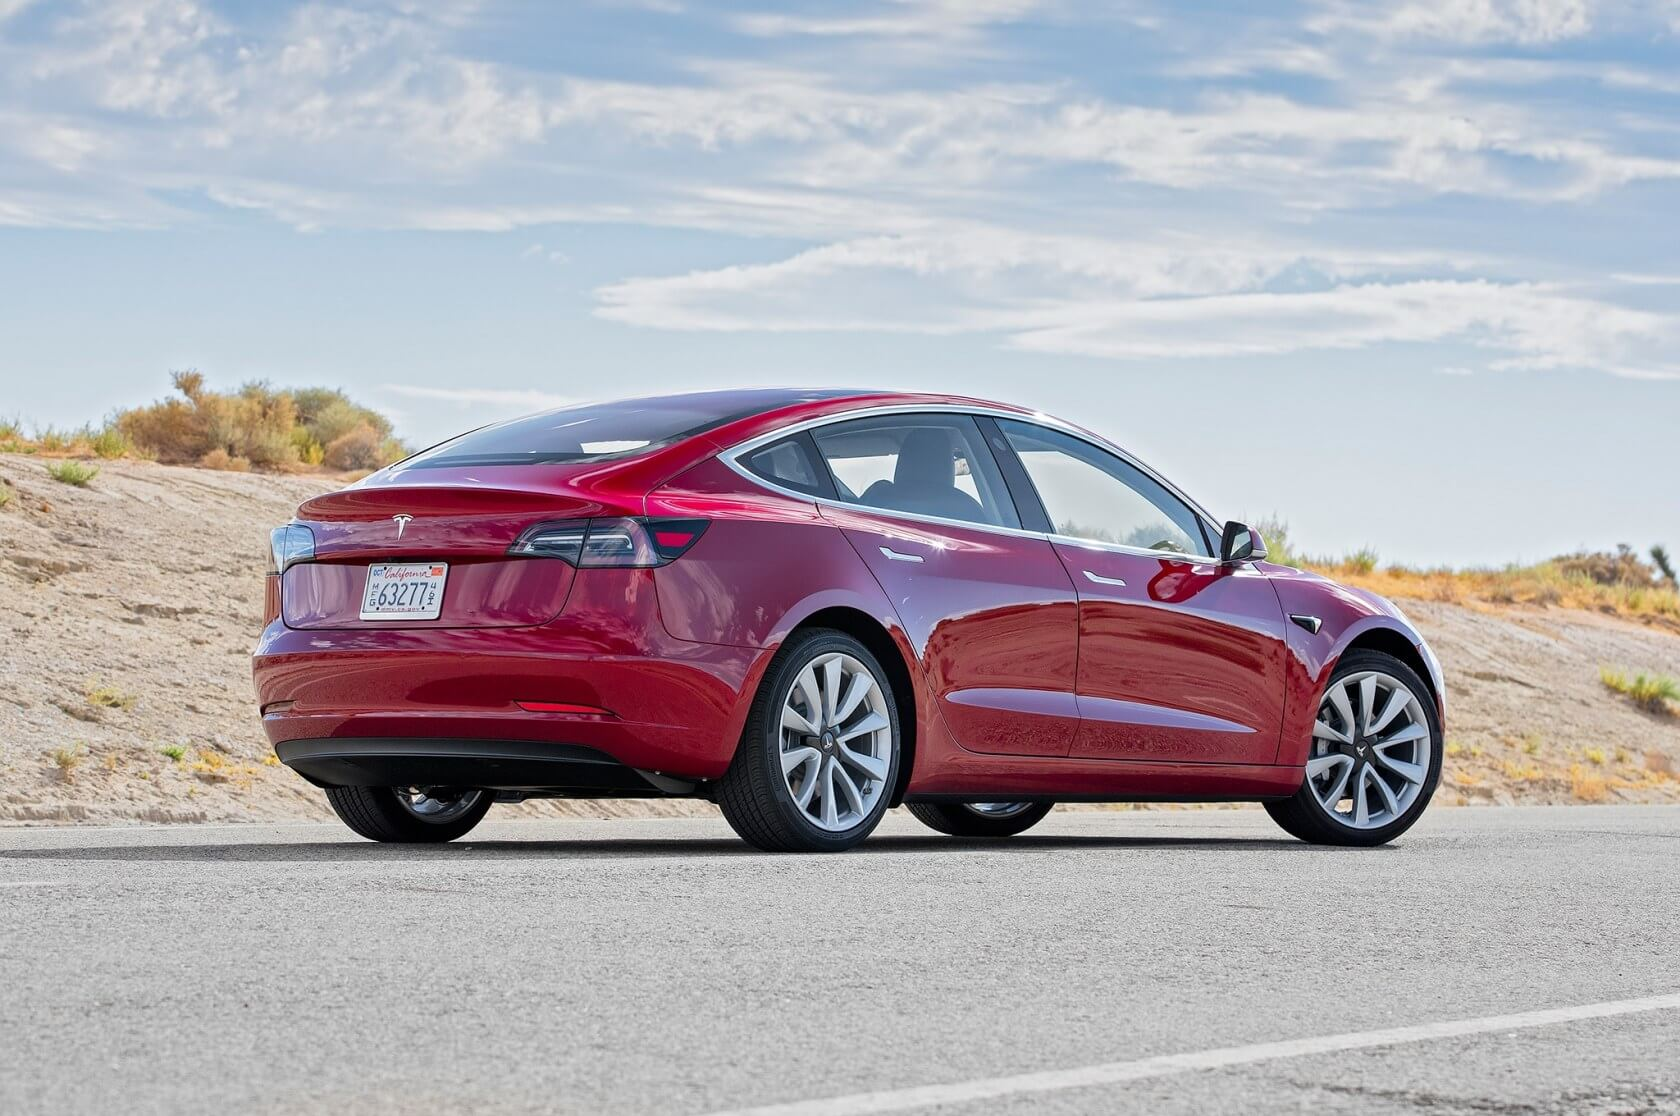 The NHTSA is reviewing a petition that claims Tesla should have recalled 2,000 vehicles